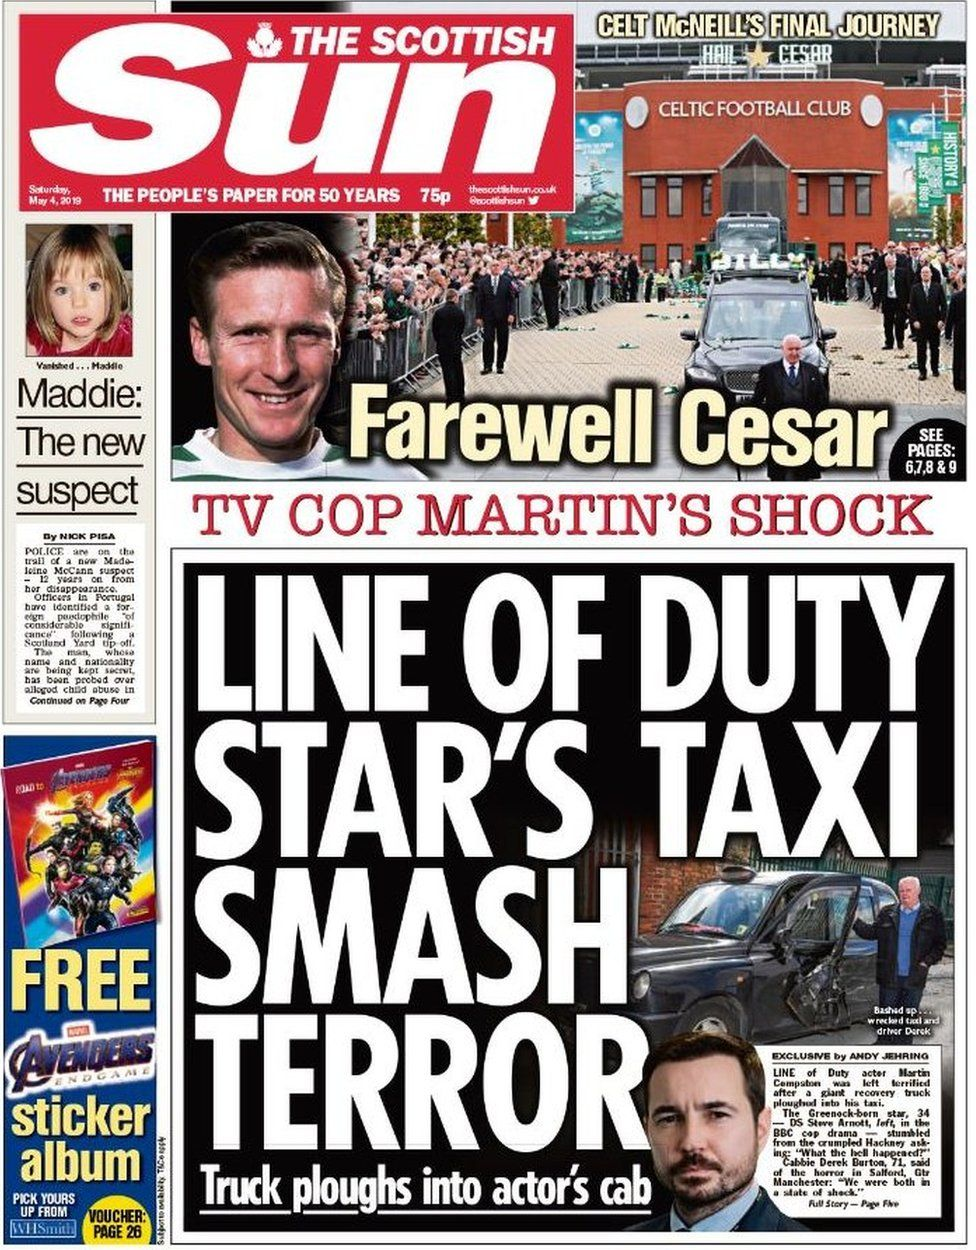 Scotland's papers: Line of Duty star's crash and indy polling - BBC News